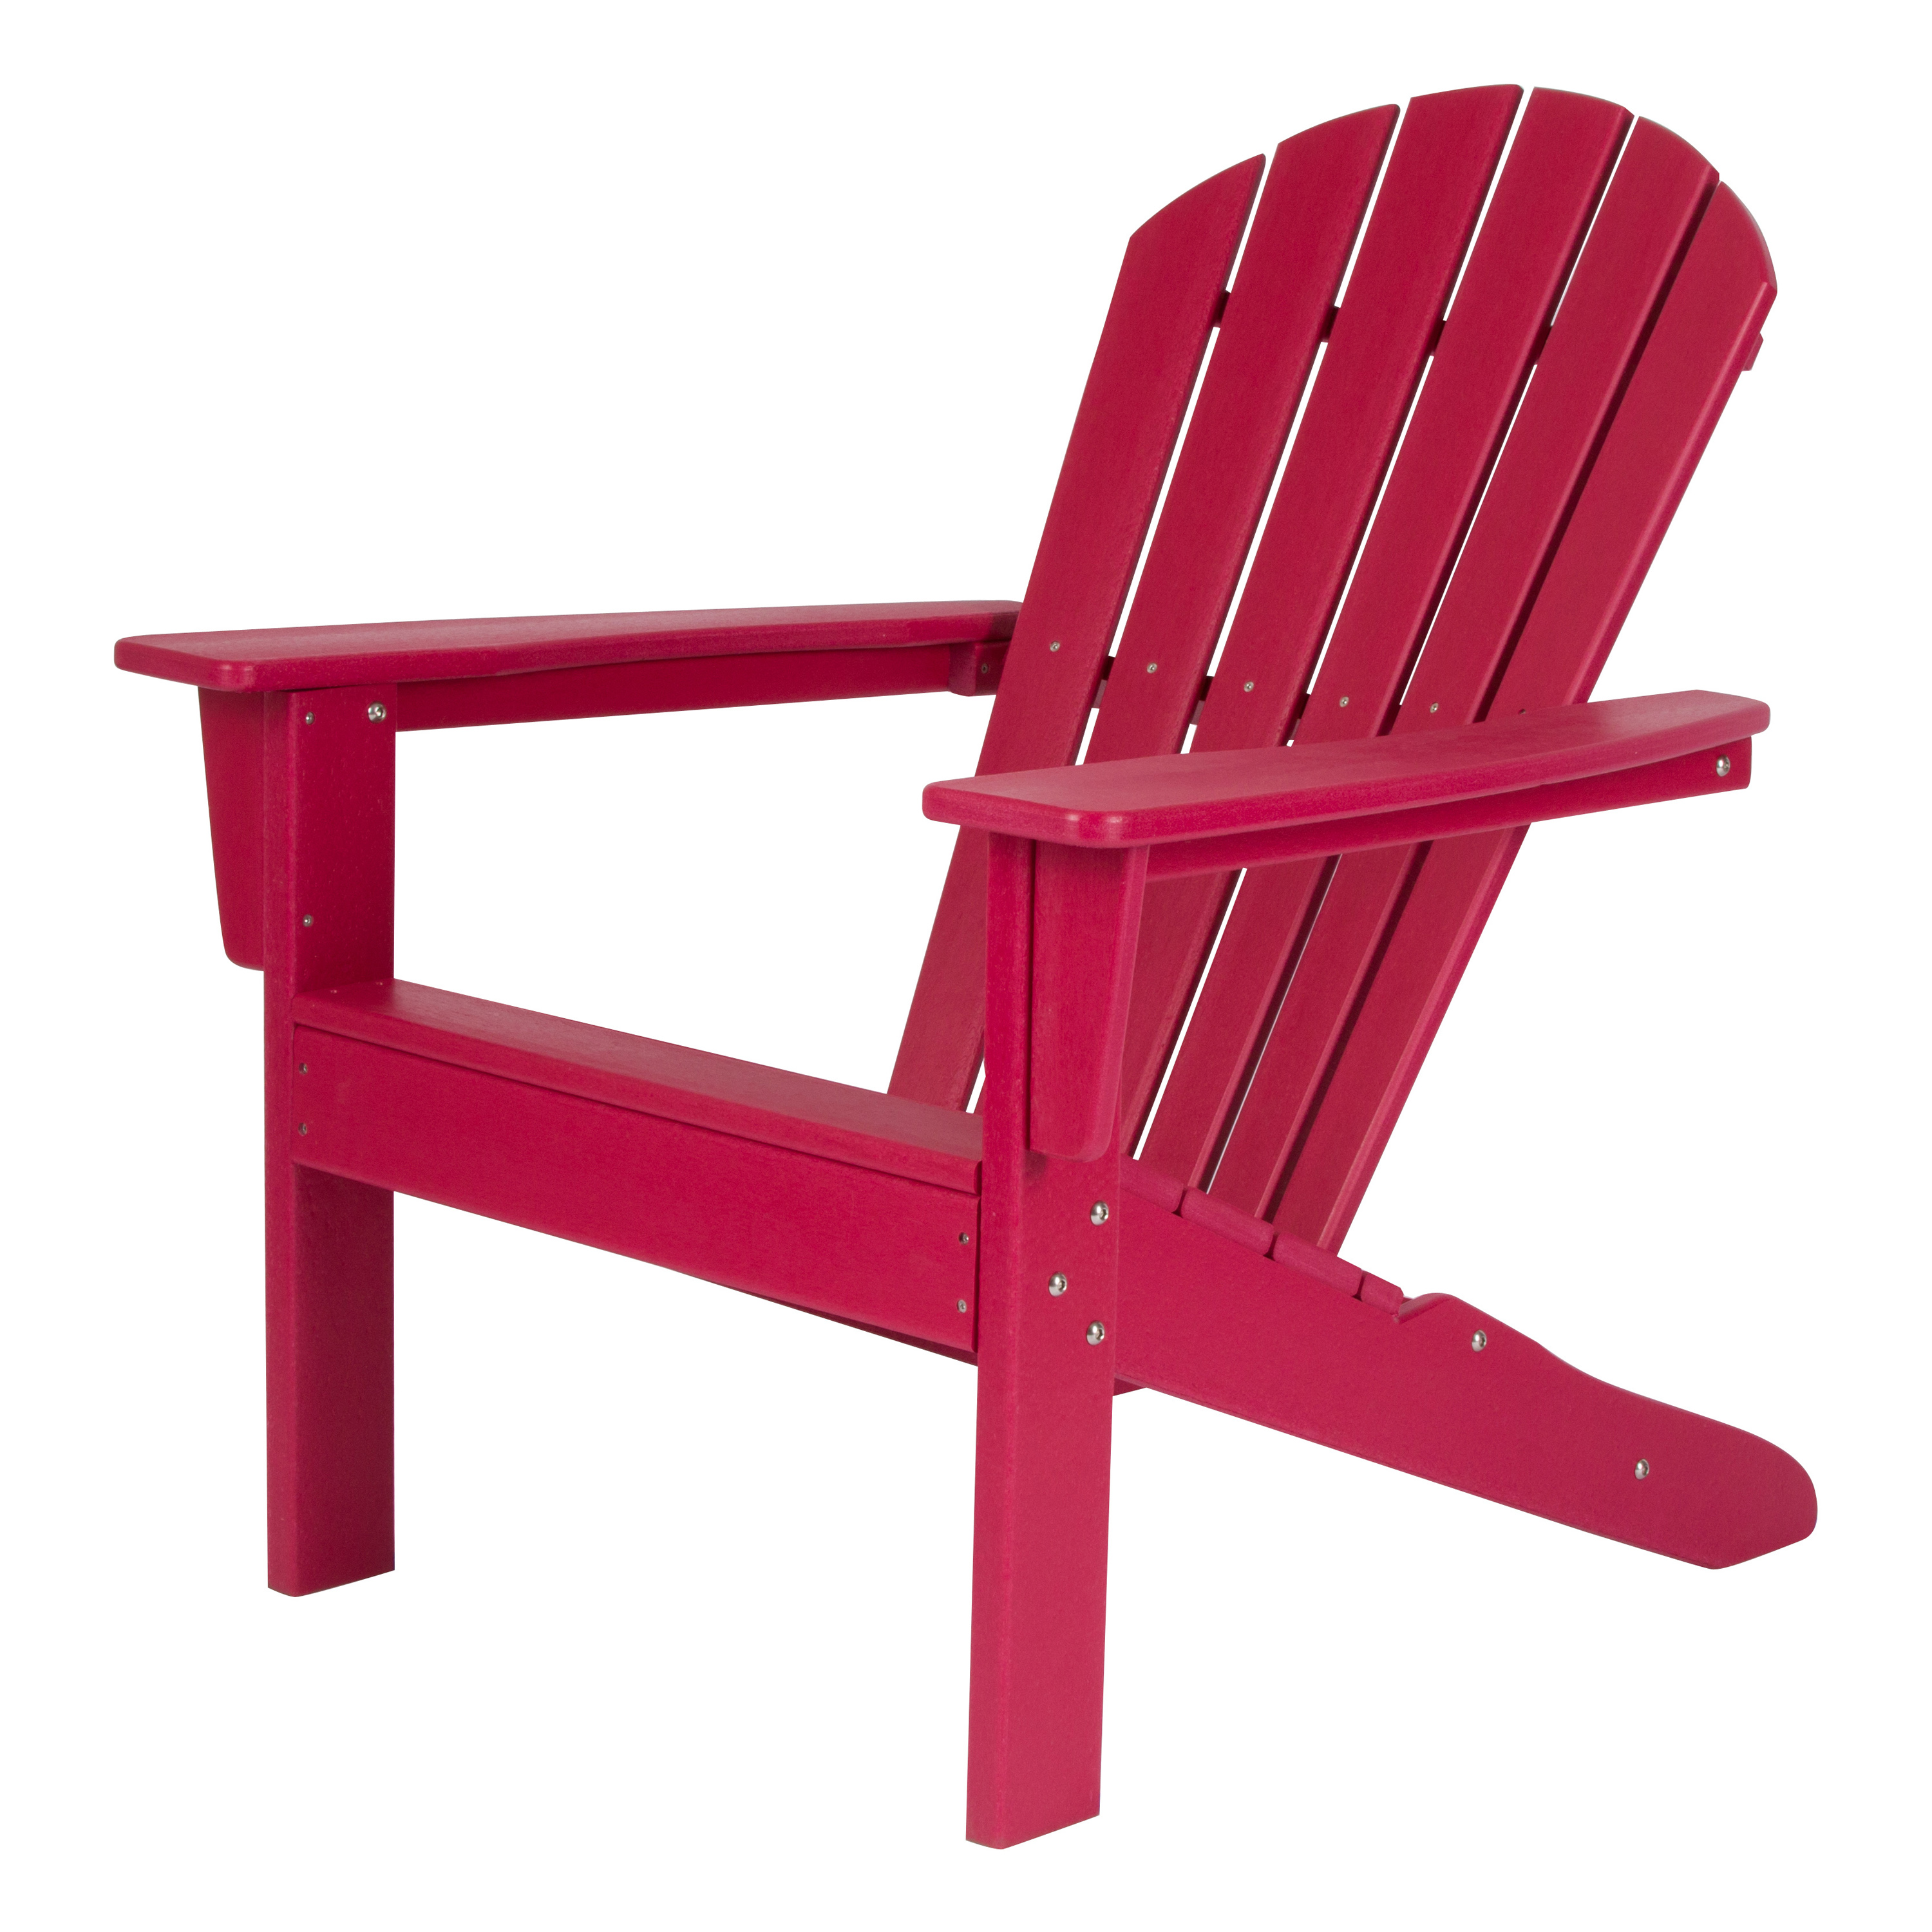 Shine Company Seaside Adirondack Chair - Chili Pepper